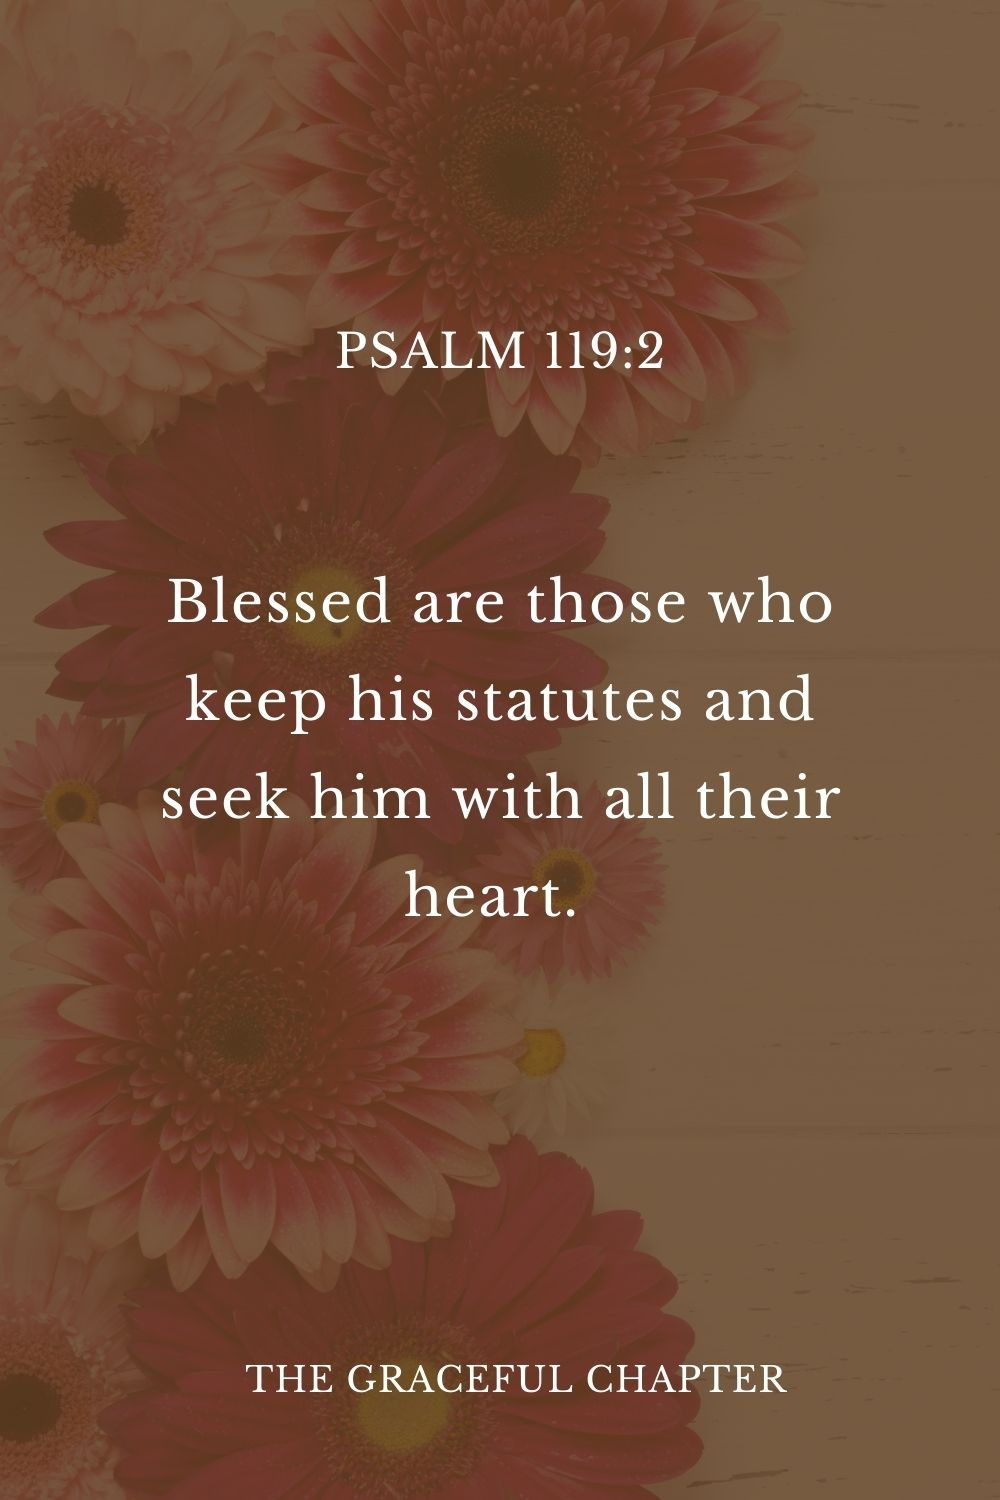 Blessed are those who keep his statutes and seek him with all their heart.  Psalm 119:2